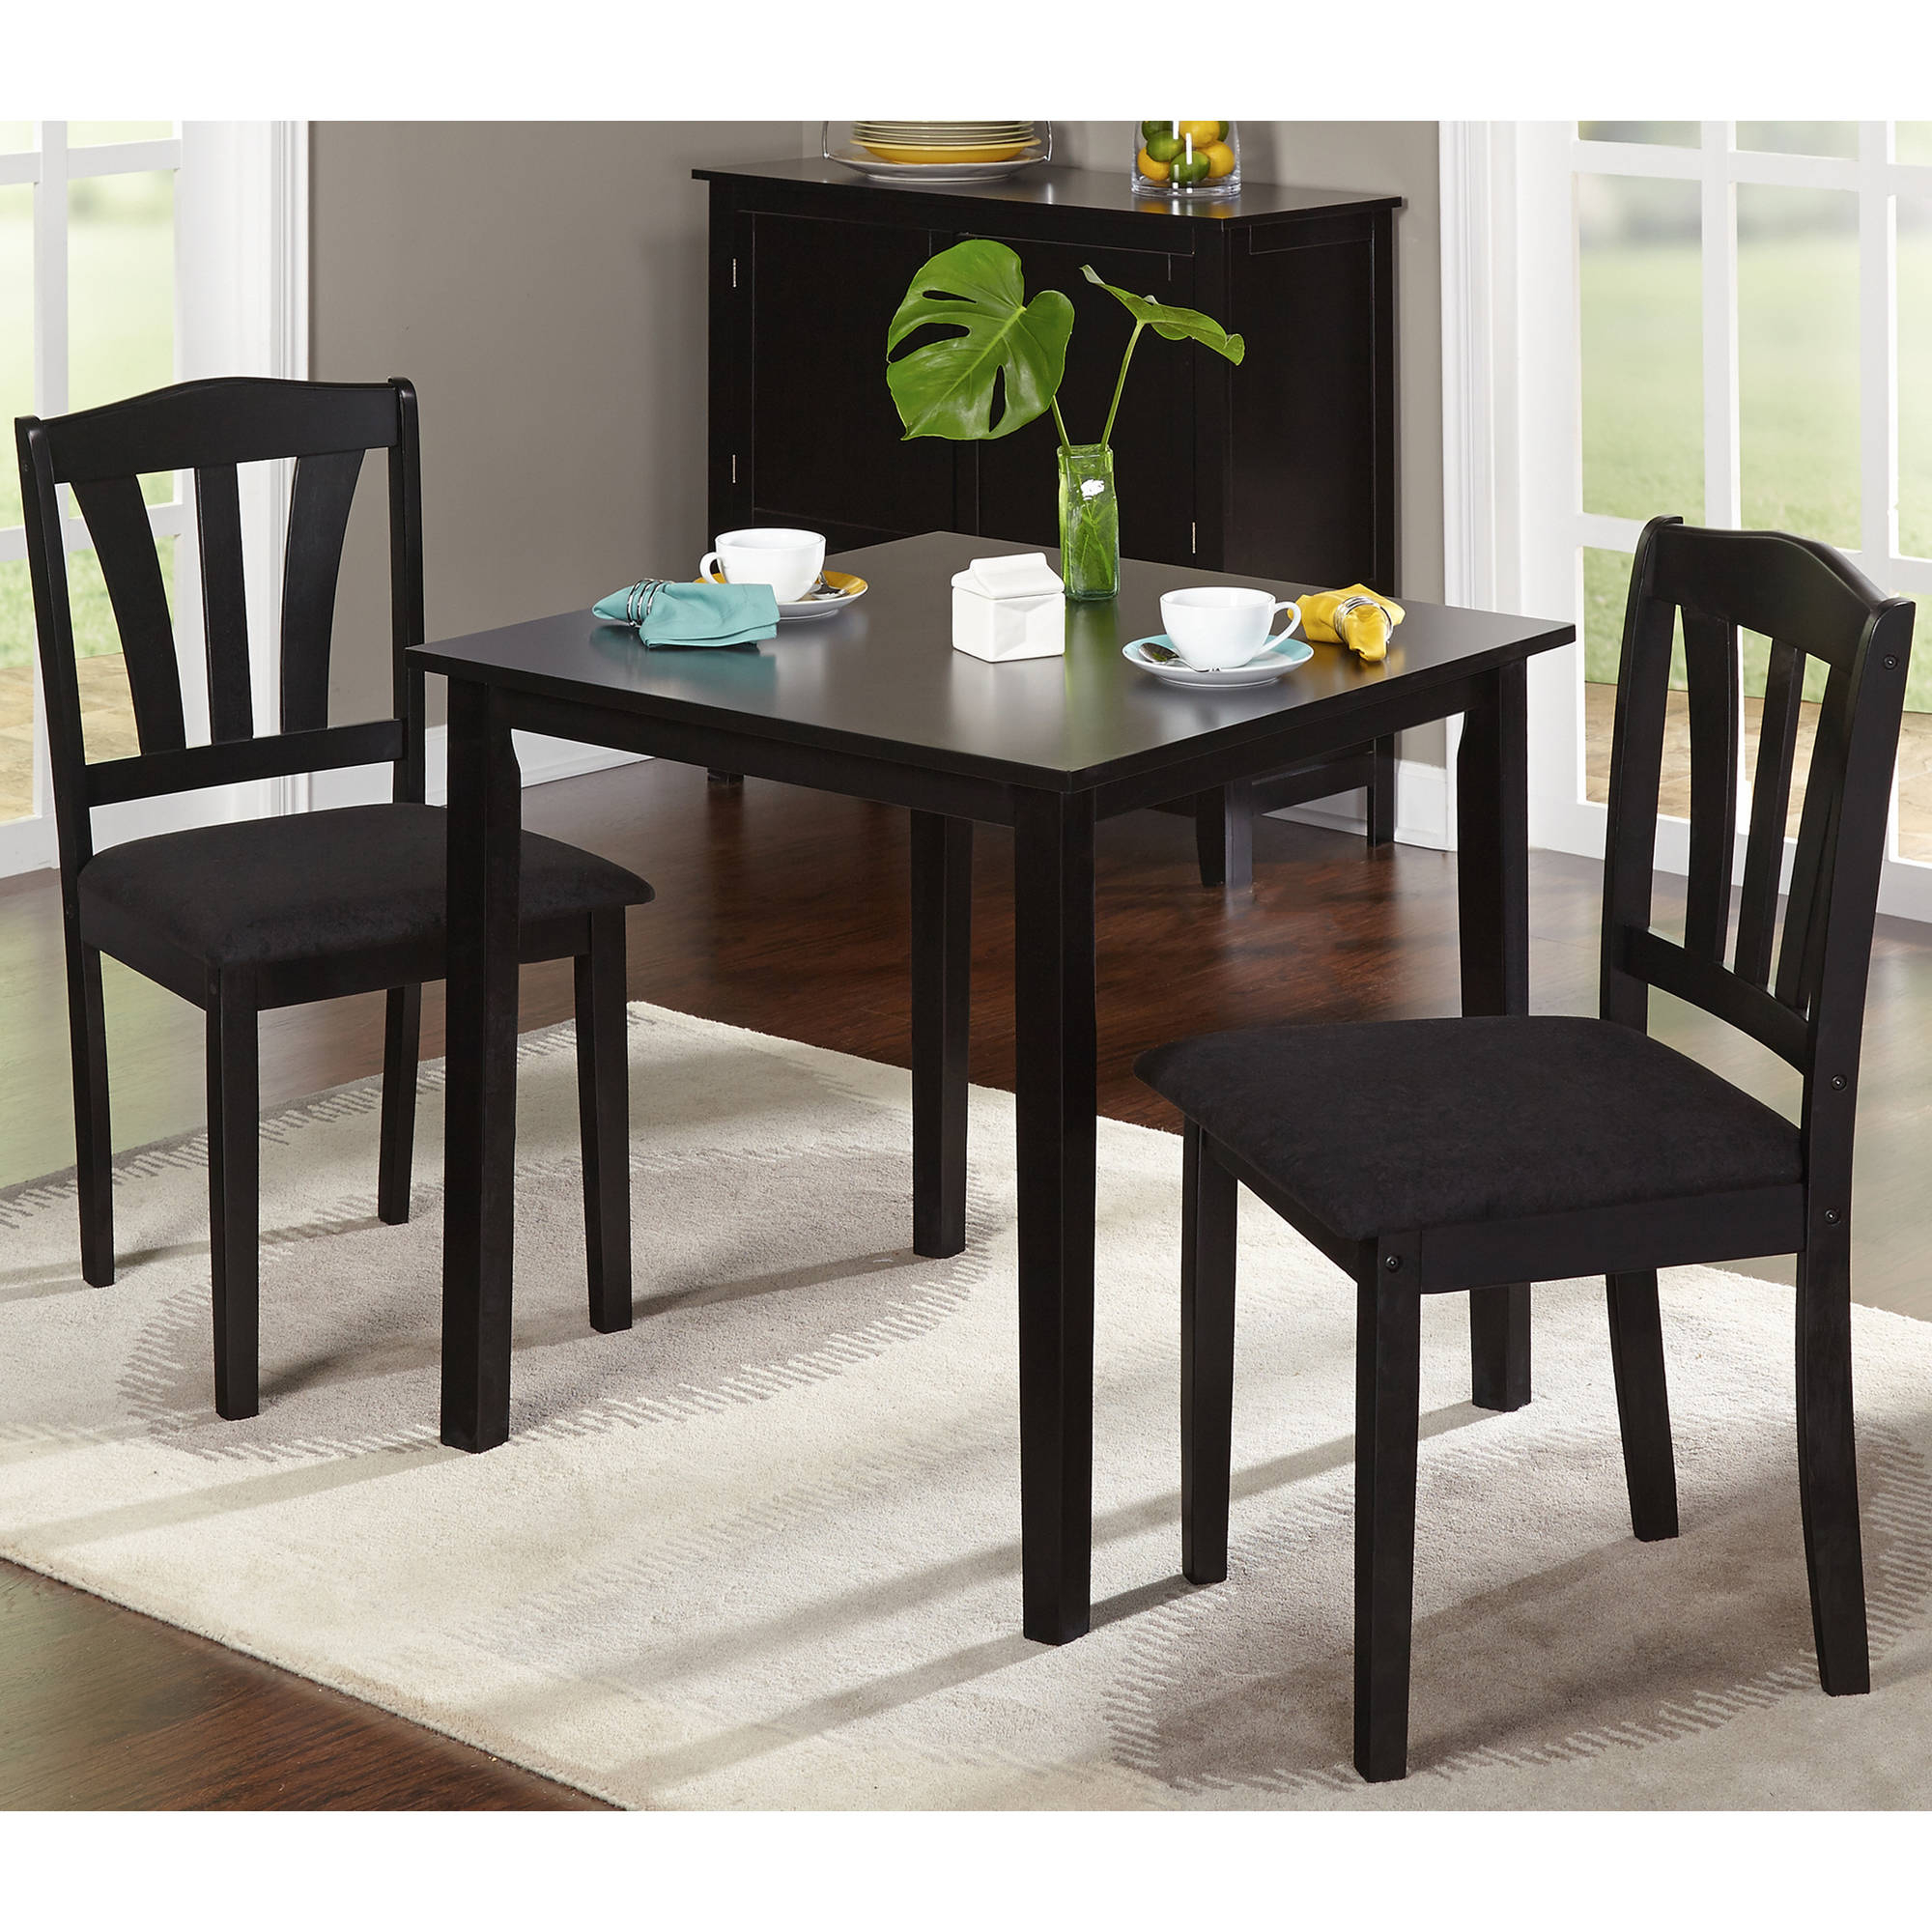 Metropolitan 3 Piece Dining Set, Multiple Finishes Intended For 2018 Rossiter 3 Piece Dining Sets (Image 8 of 20)